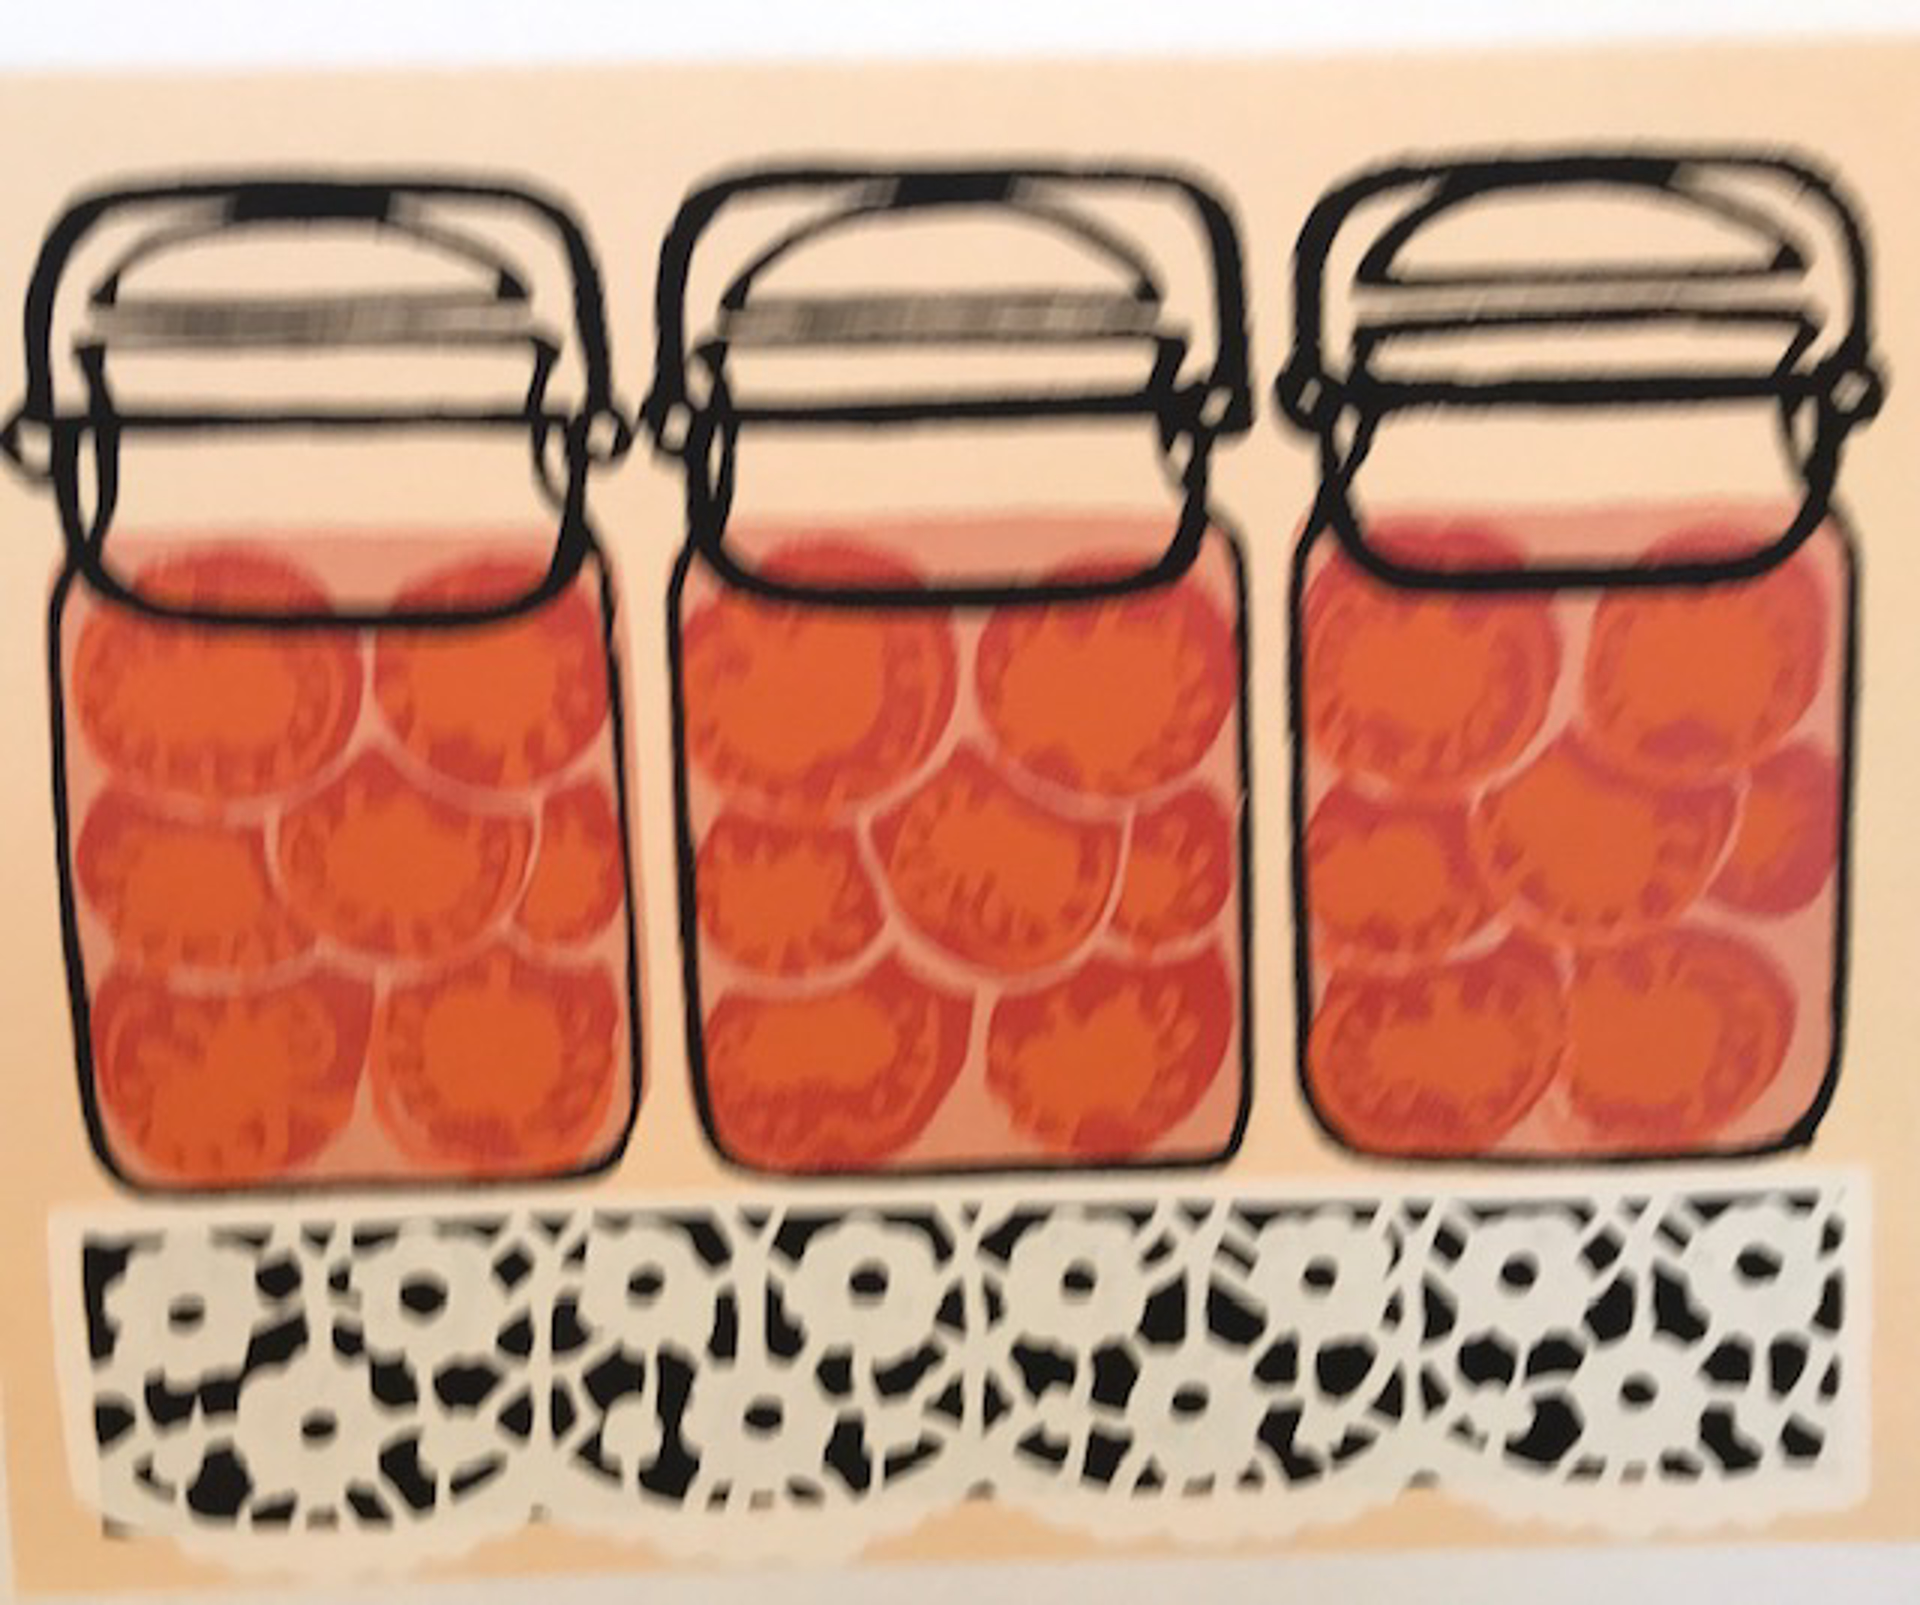 Tomatoes by Judith Welk